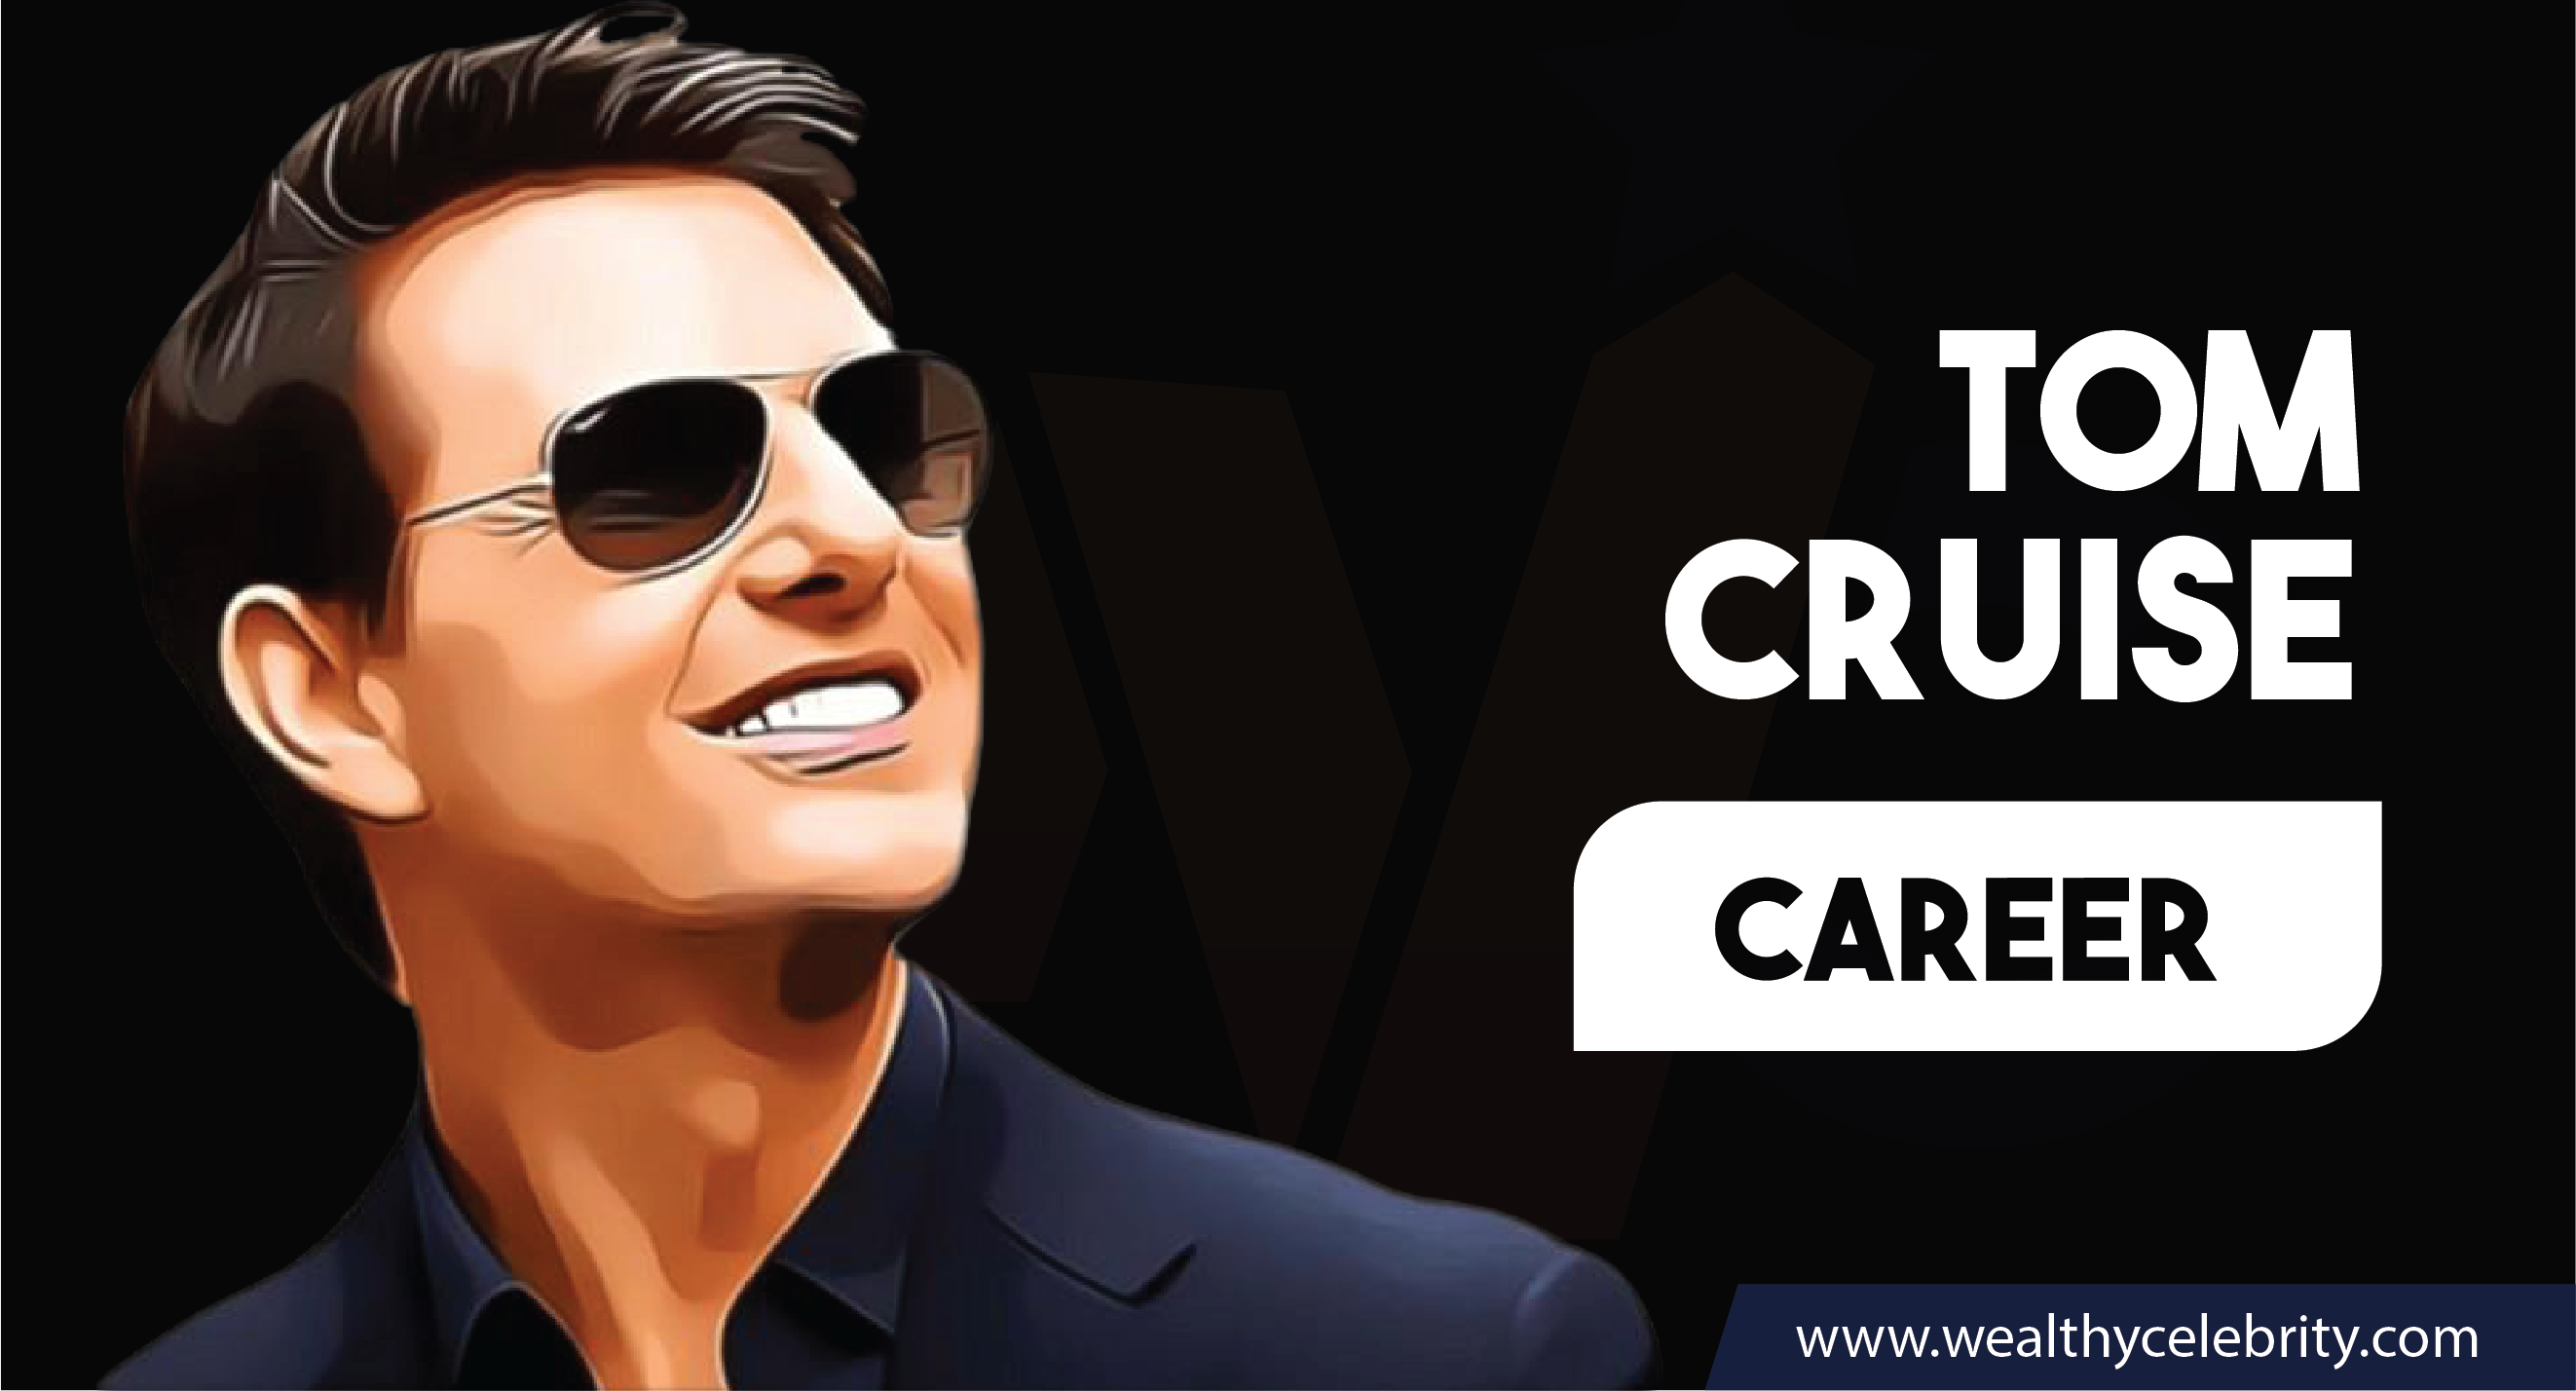 Tom Cruise_Career